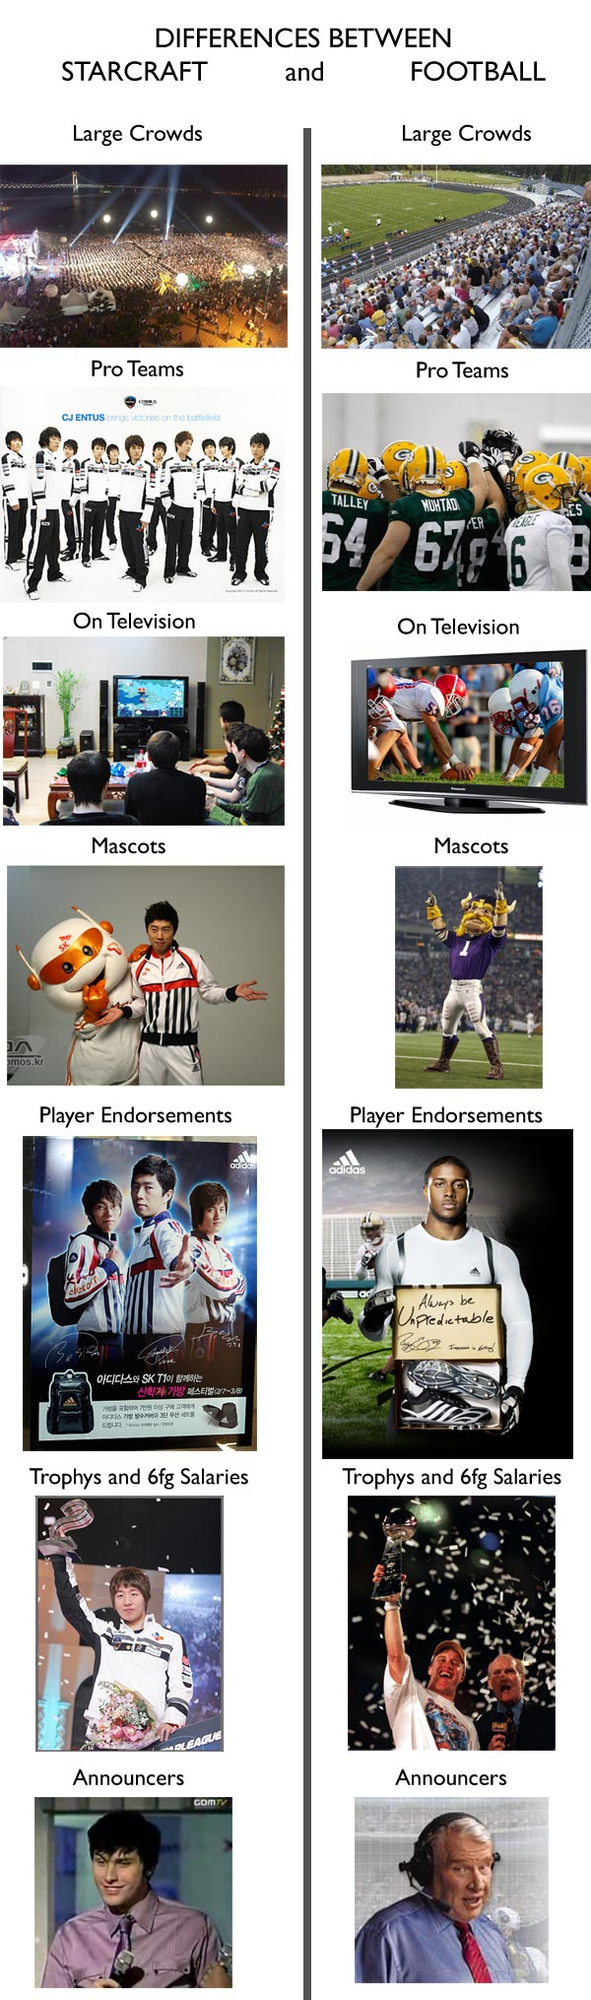 Differences Between Starcraft and Pro Football